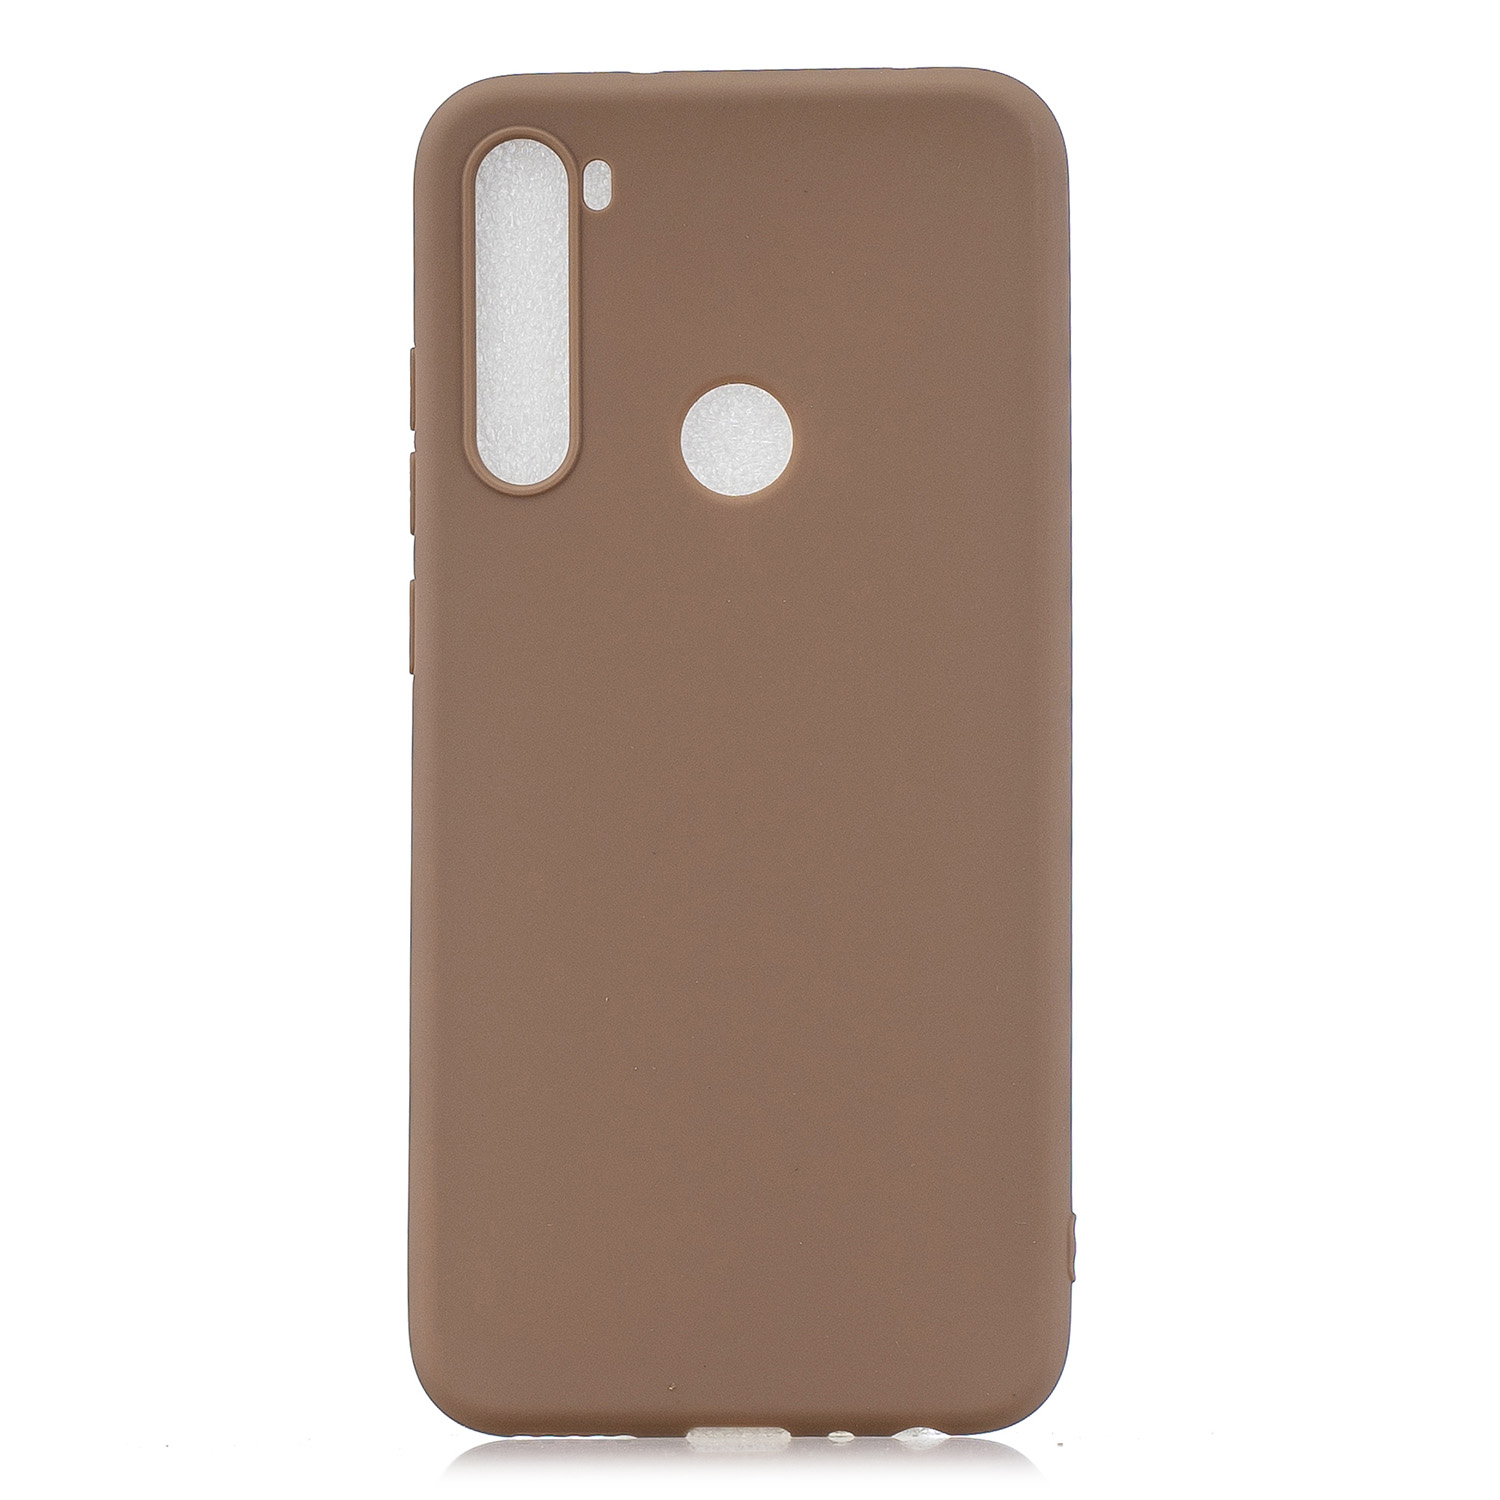 For Redmi 8 8A note 8T TPU Back Cover Soft Candy Color Frosted Surface Shockproof TPU Mobile Phone Protective Case 9